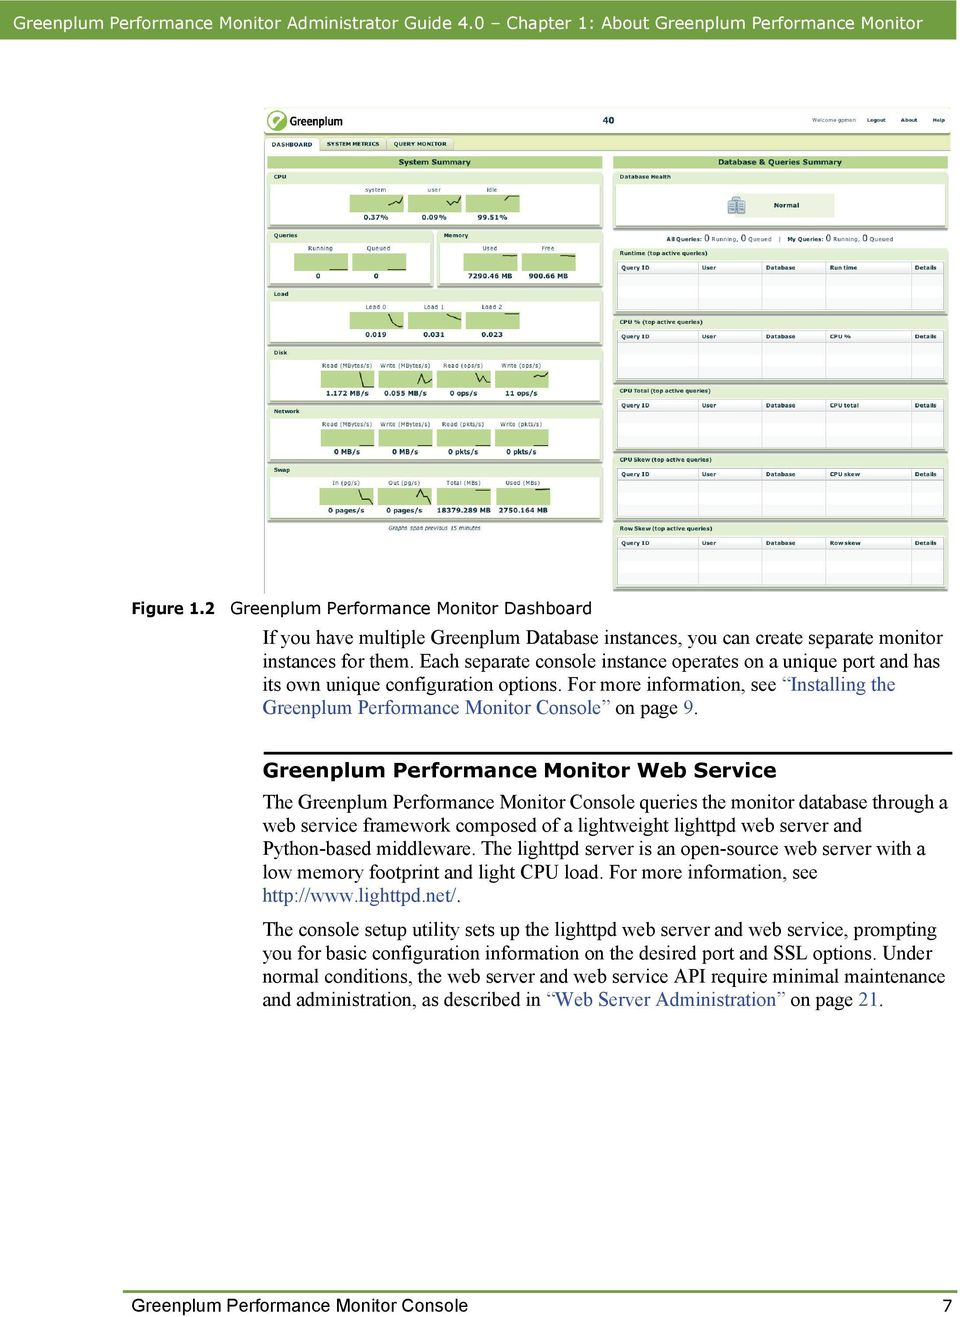 Each separate console instance operates on a unique port and has its own unique configuration options. For more information, see Installing the Greenplum Performance Monitor Console on page 9.